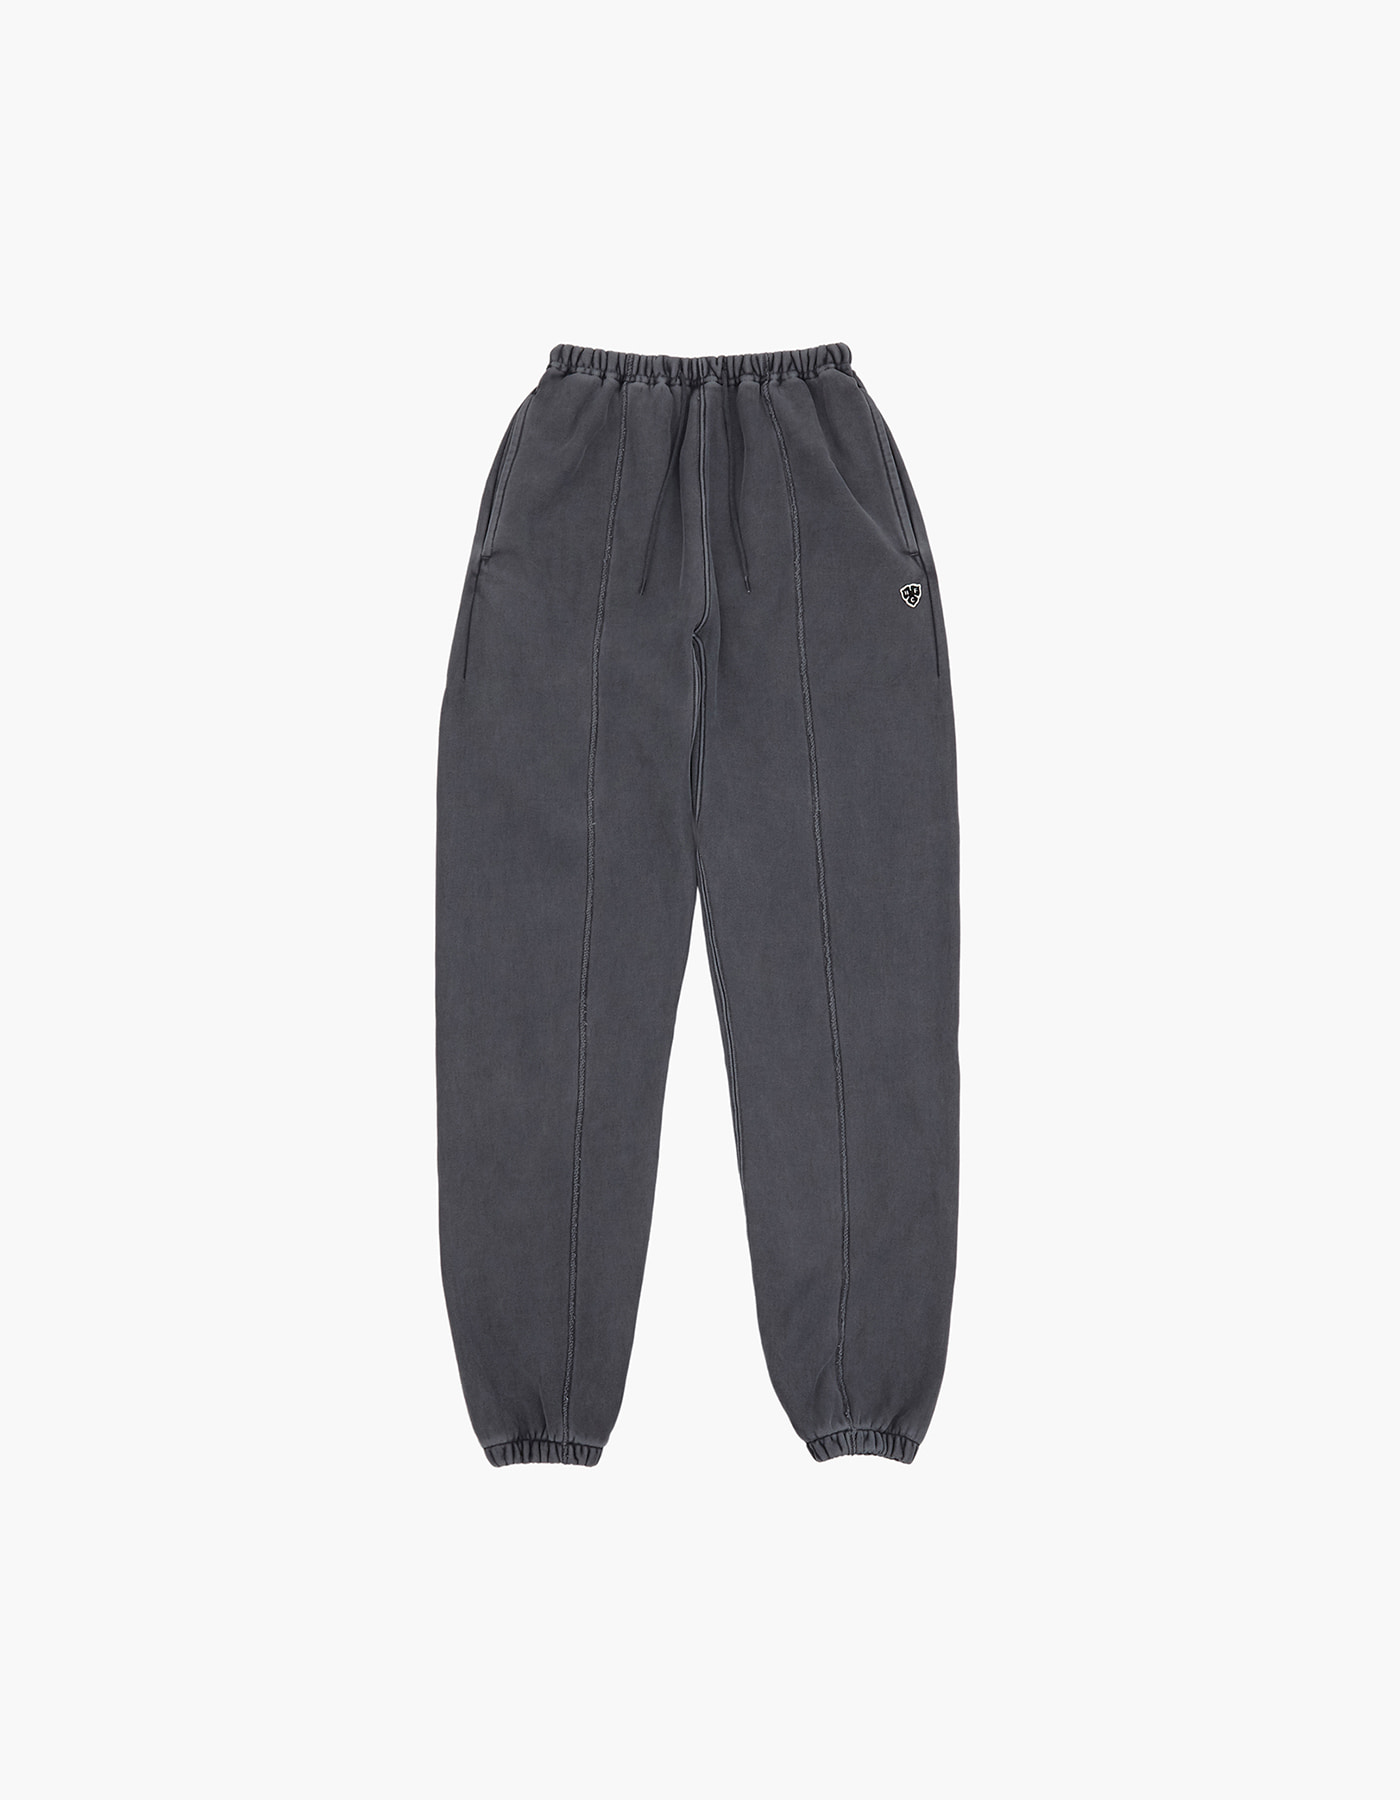 221 PIGMENT SWEATPANTS / CHARCOAL